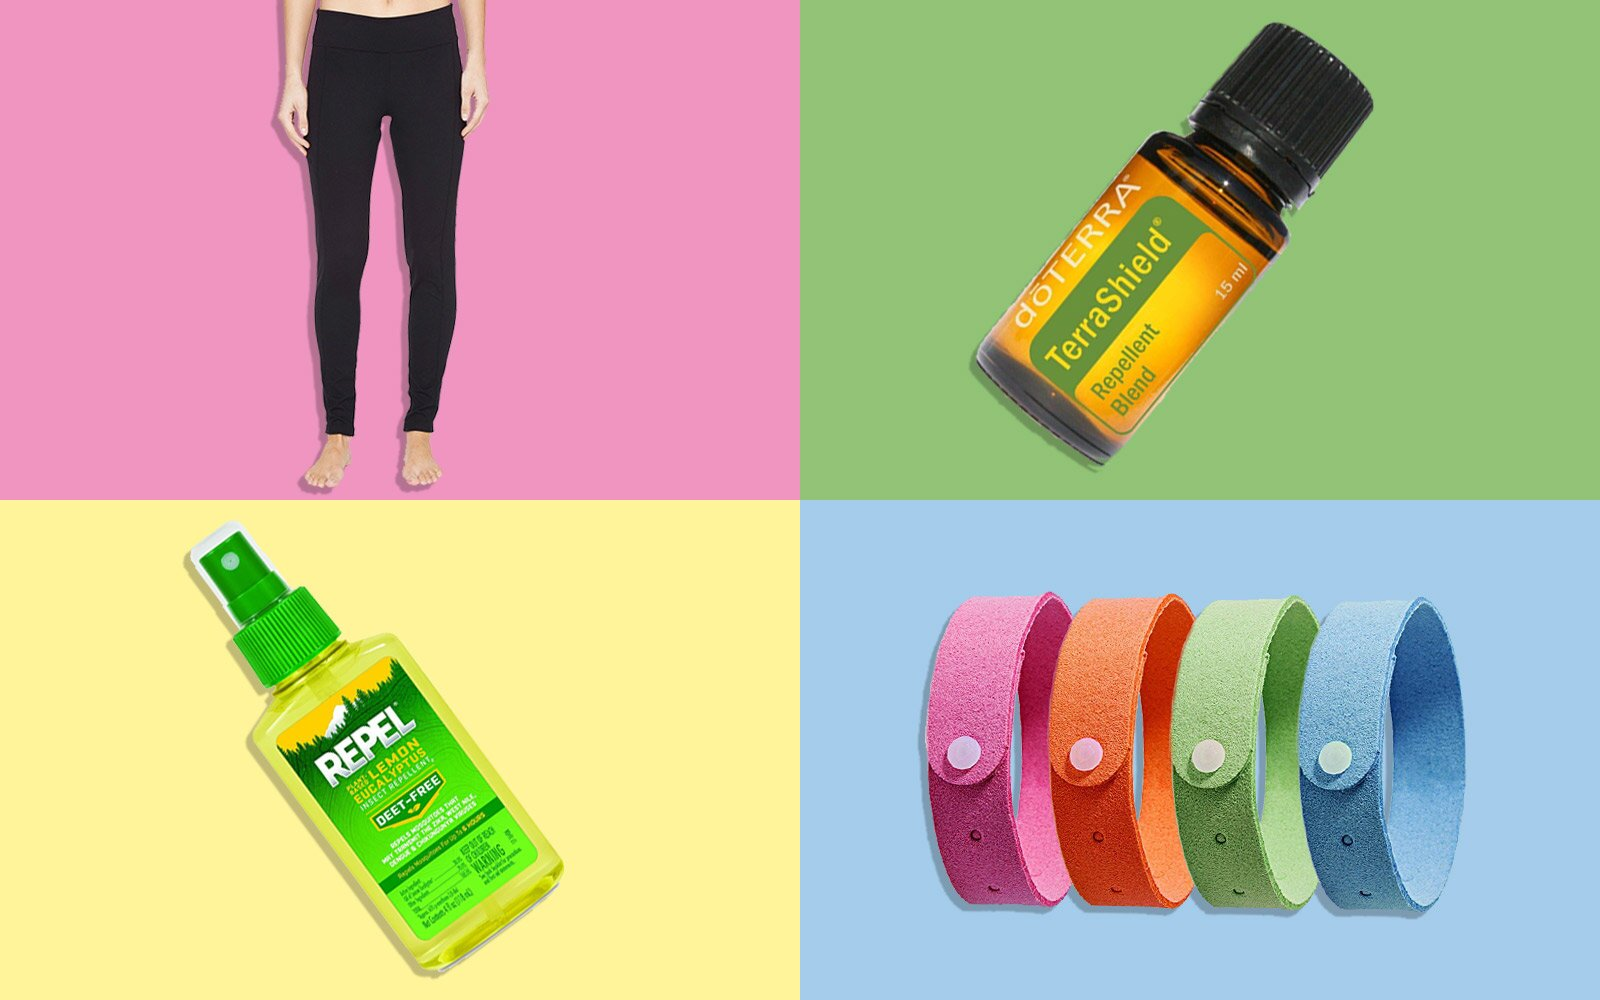 The Best Natural Insect Repellents in 2019 | Travel + Leisure